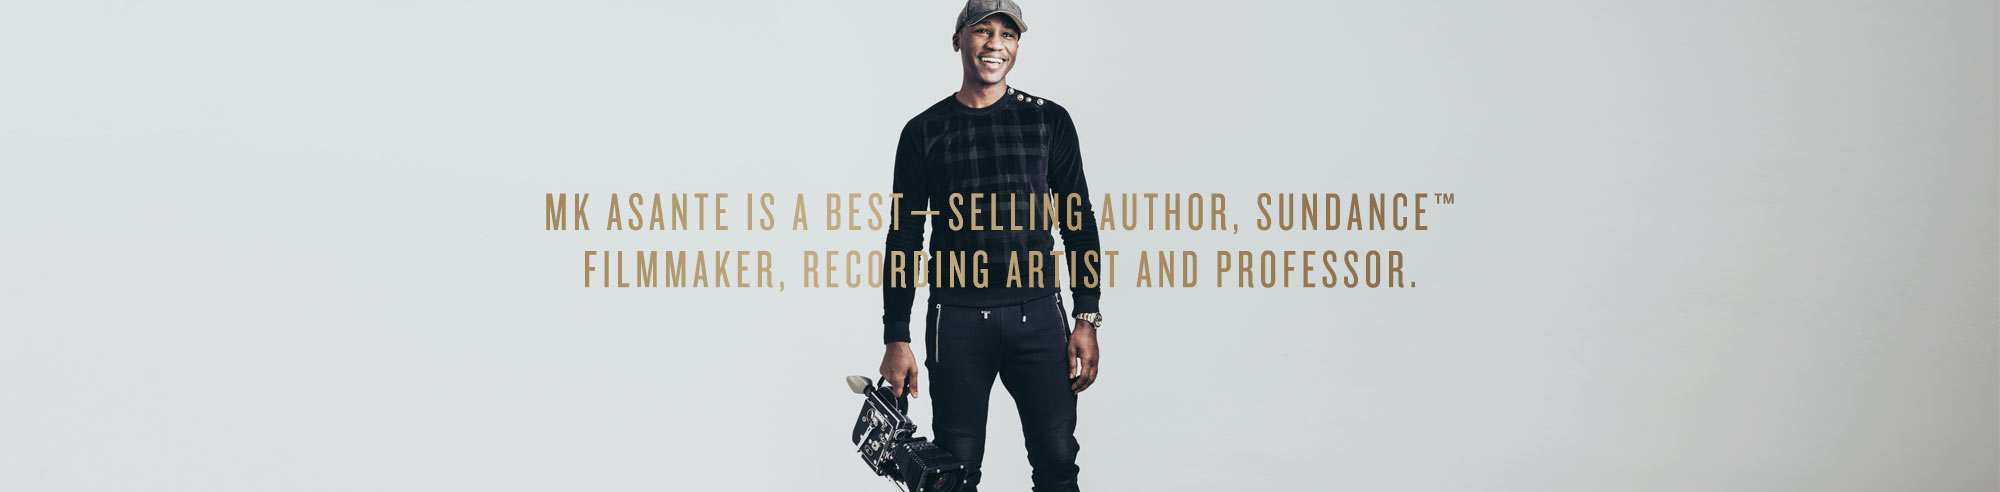 best-selling author and filmmaker